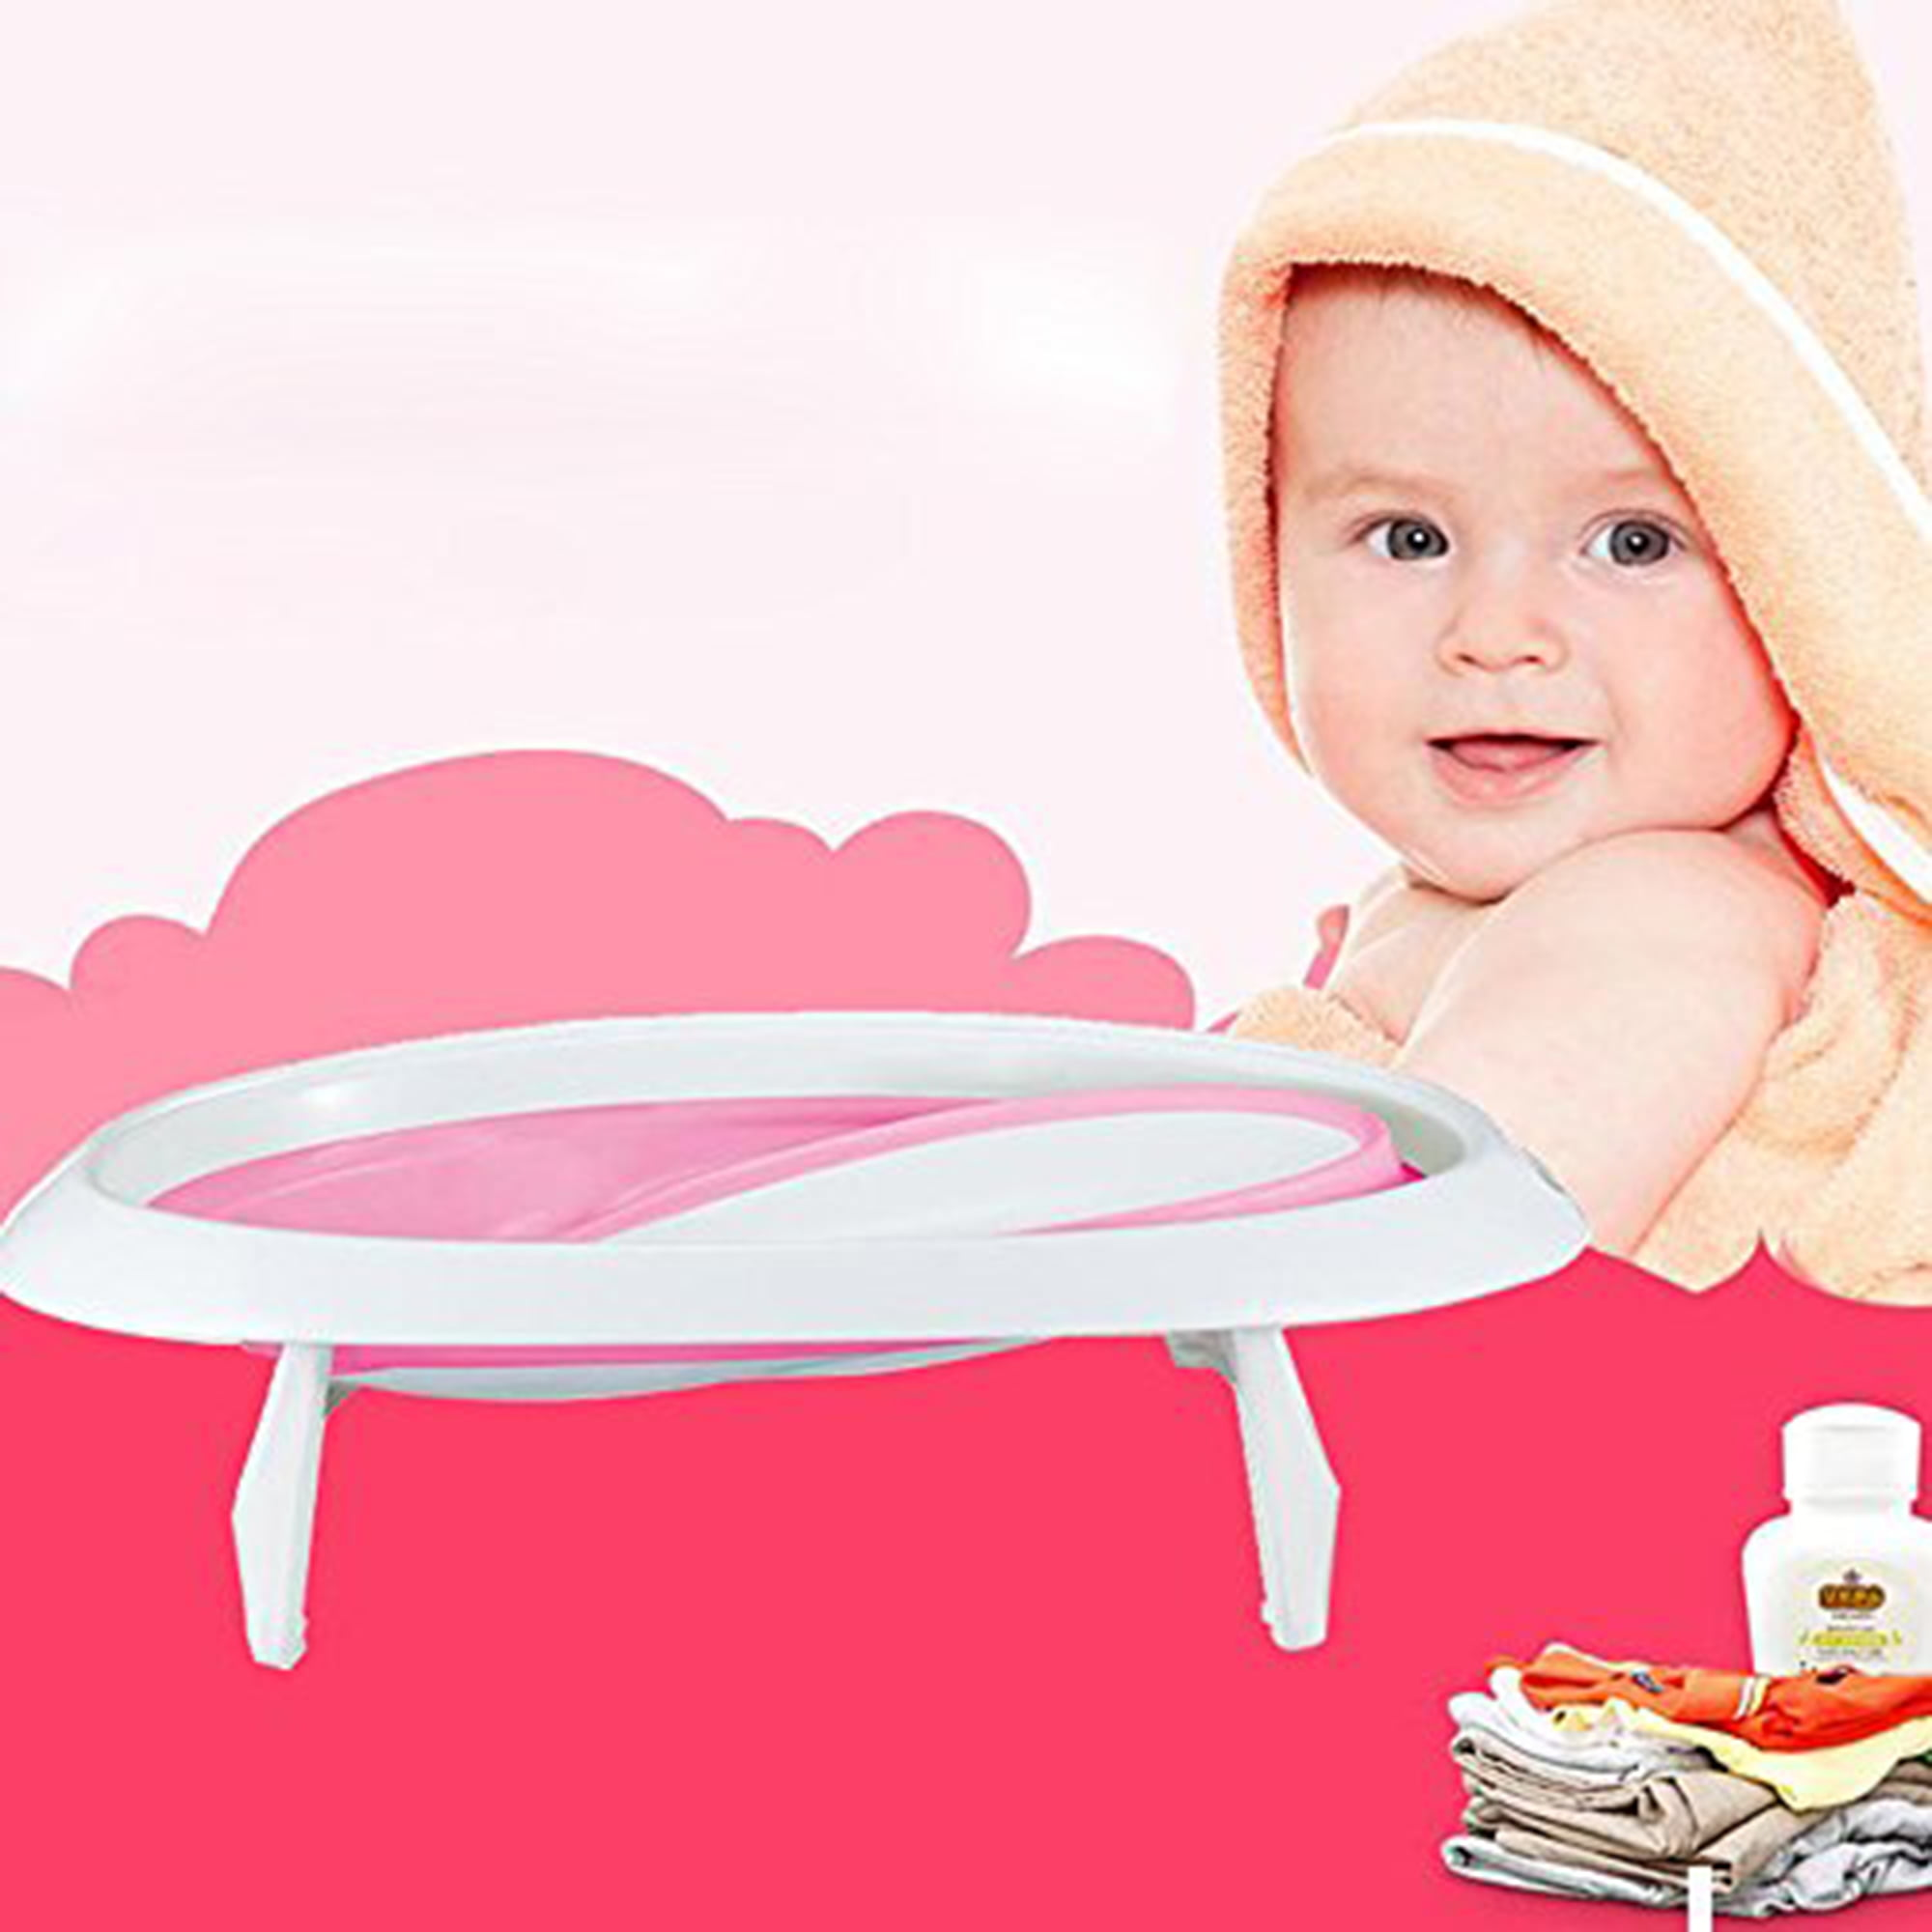 KARMAS PRODUCT Infant EasyStore Comfort Tub Soft Foldable Newborn Bathtub Lovly Pink for Girl by KARMAS PRODUCT